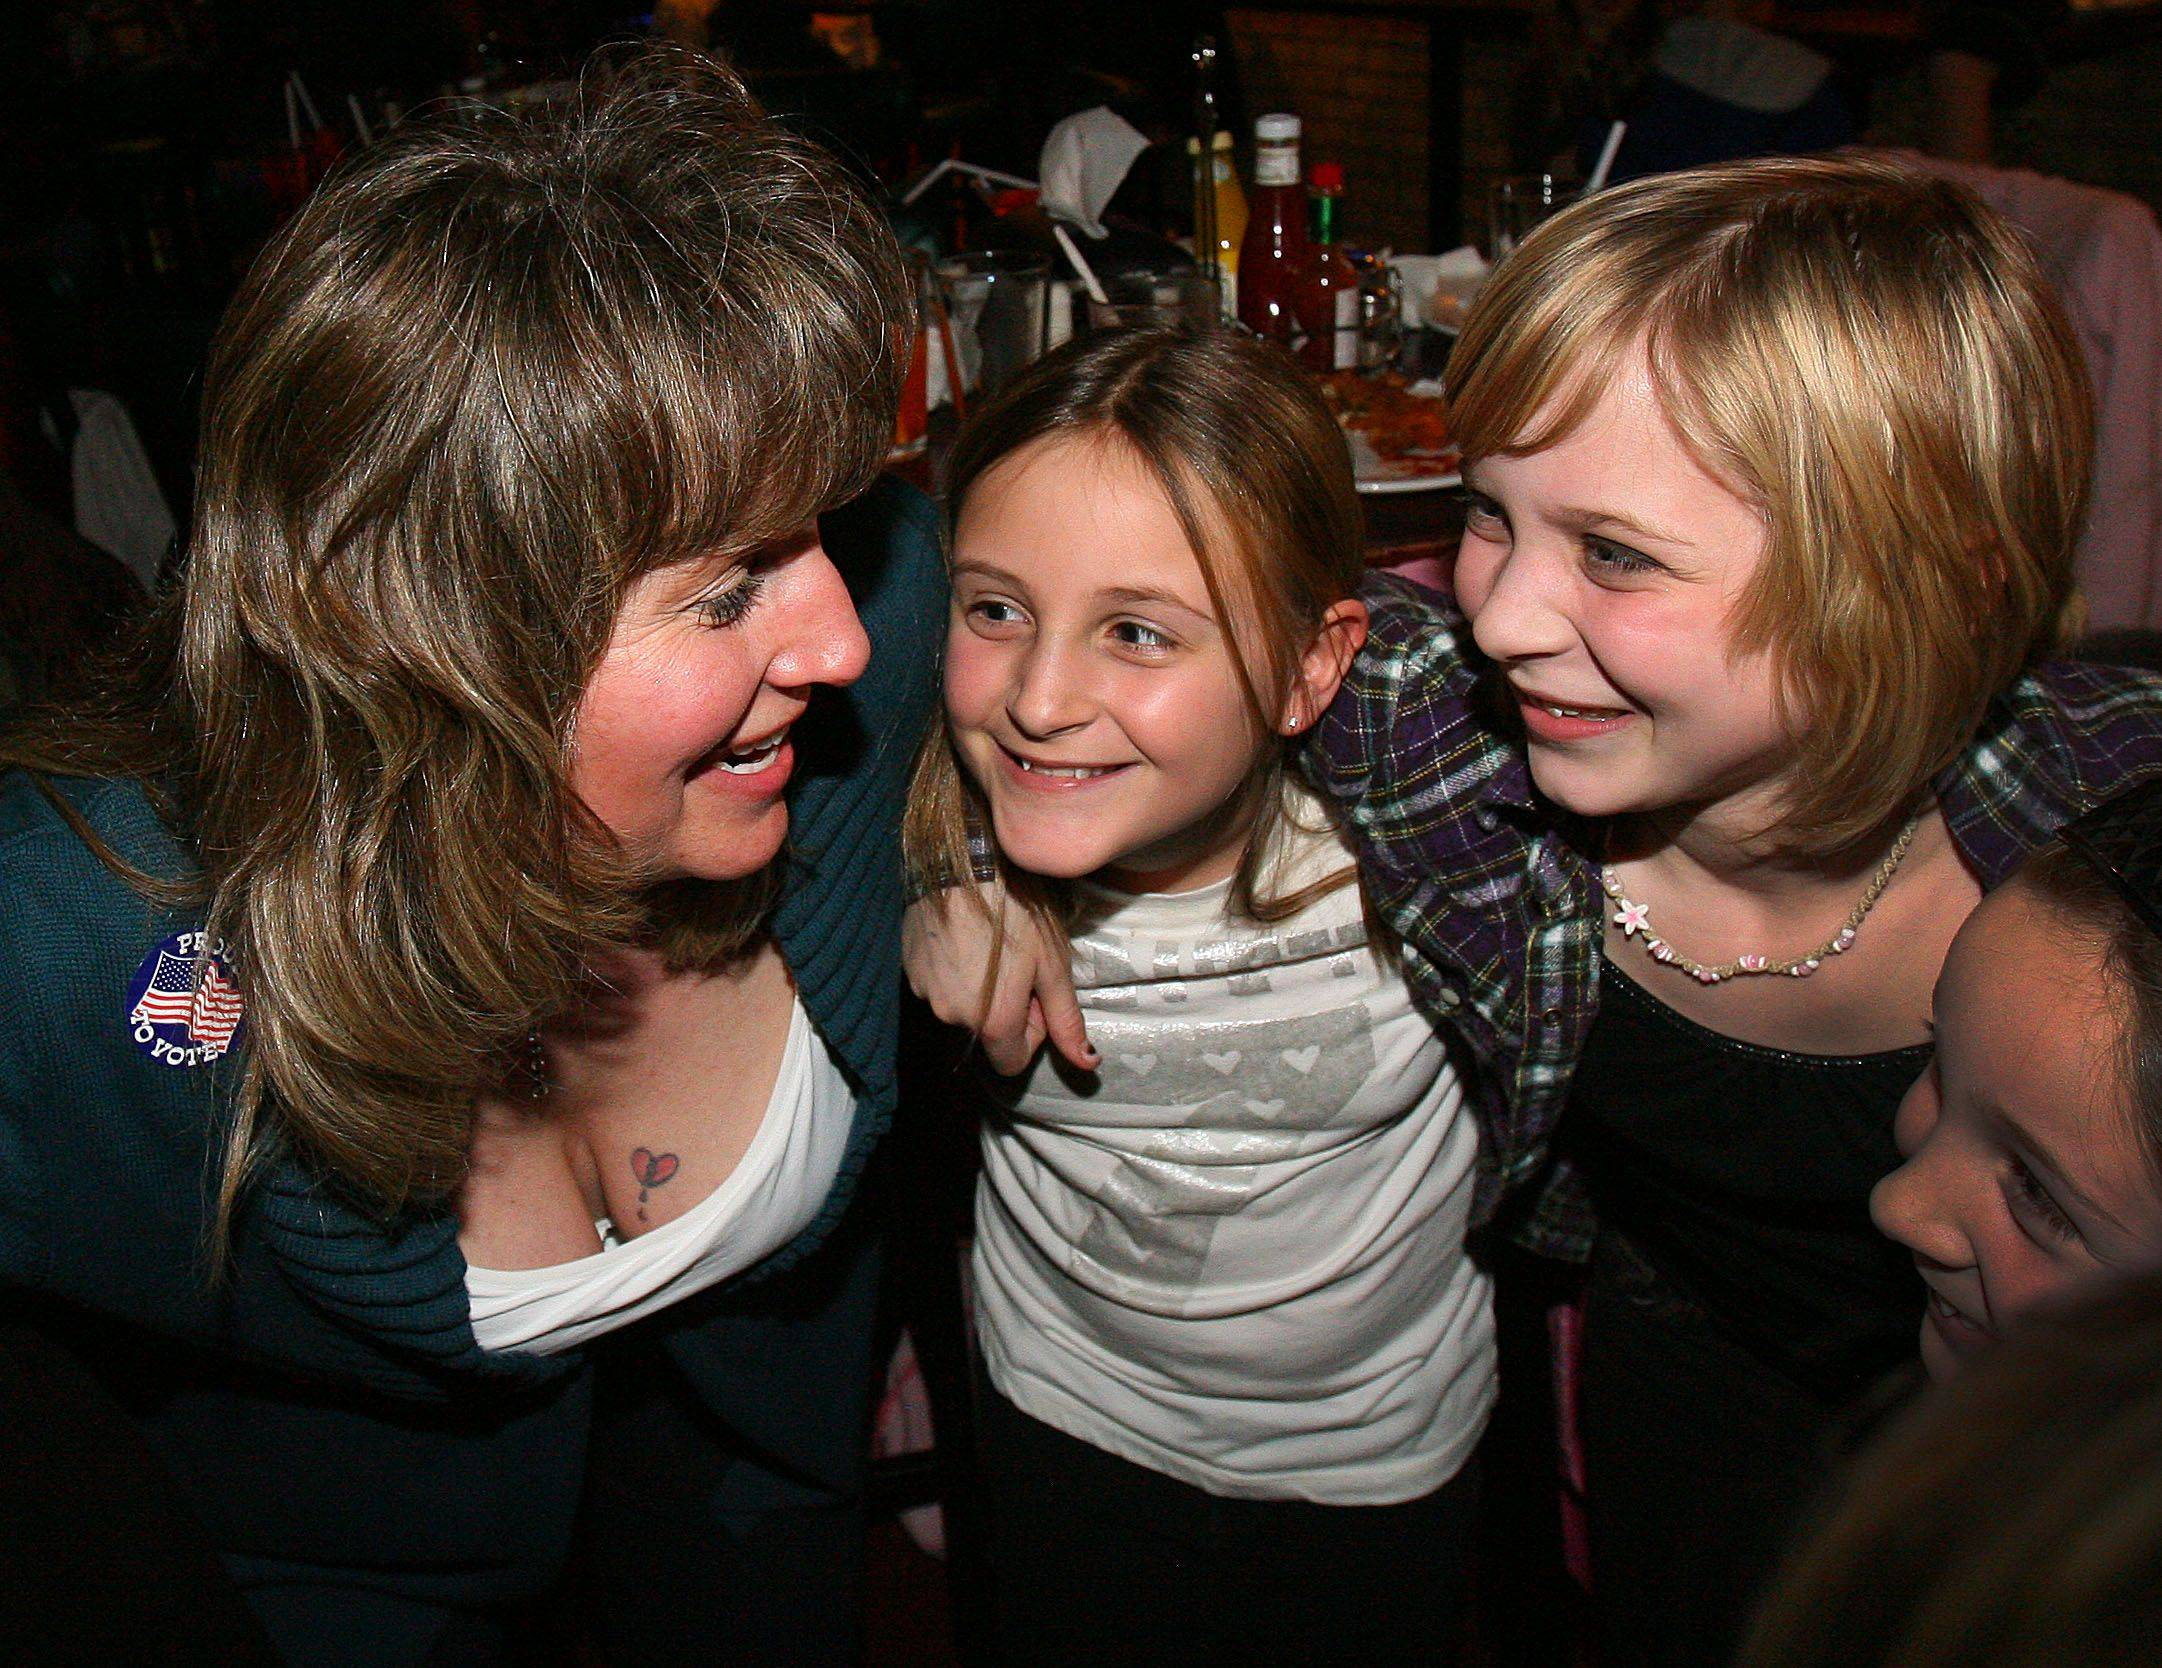 Shannon Smigielski, left, celebrates with her daughter, Morgan, 10, middle, and friend, Kelly Yoder, 10, after winning a seat on the Grayslake District 46 school board.